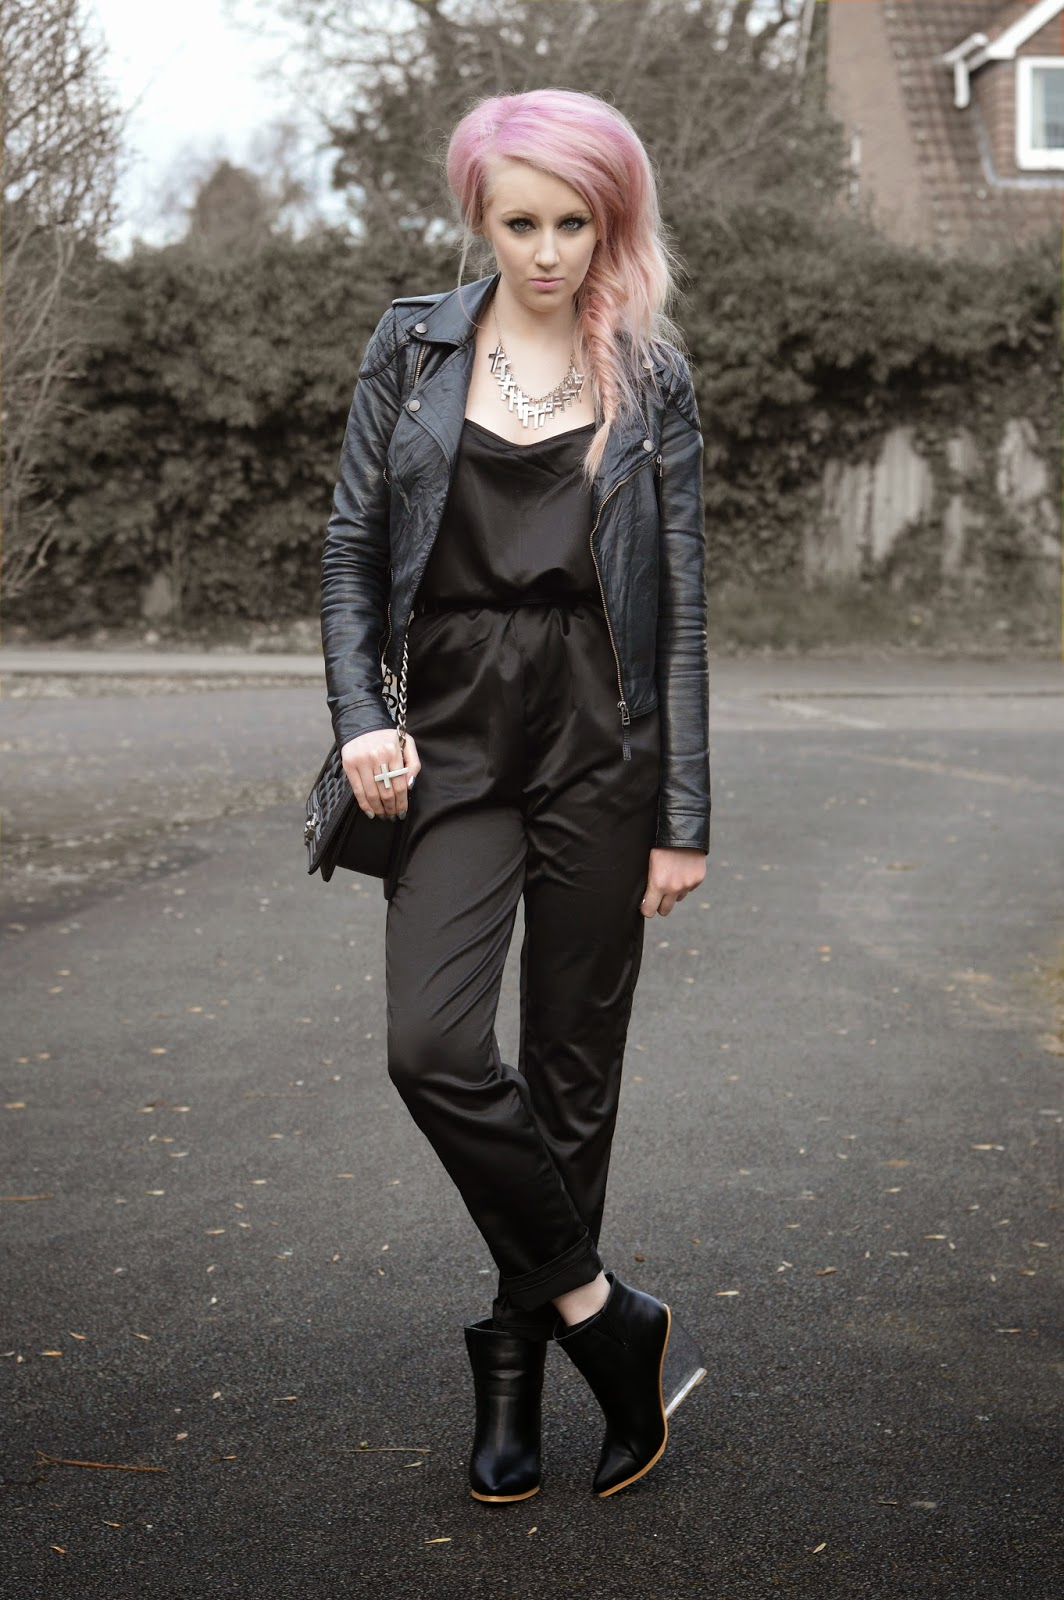 Sammi Jackson - Black Jumpsuit + Perspex Wedges